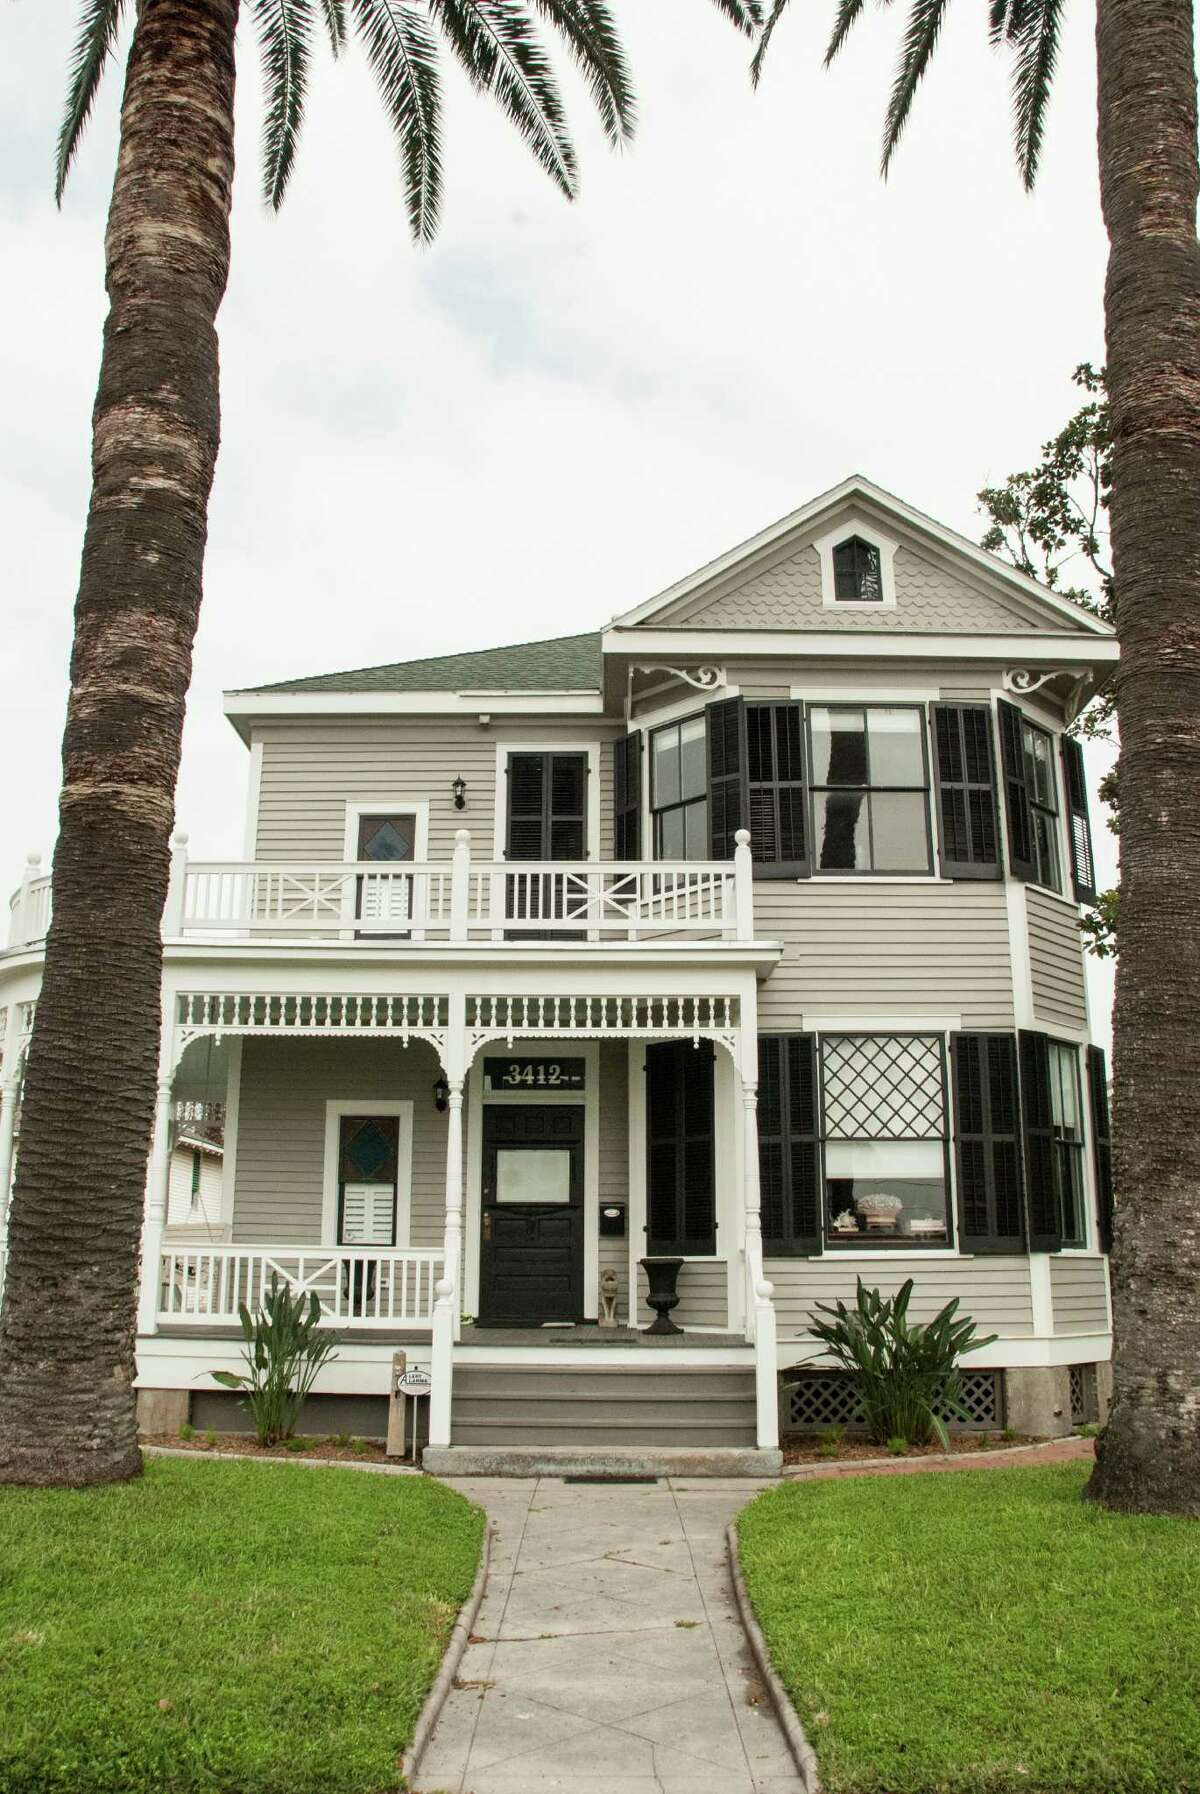 New paint and repaired gingerbread detailing made this 1909 home on Galveston's Avenue O look fresh again.